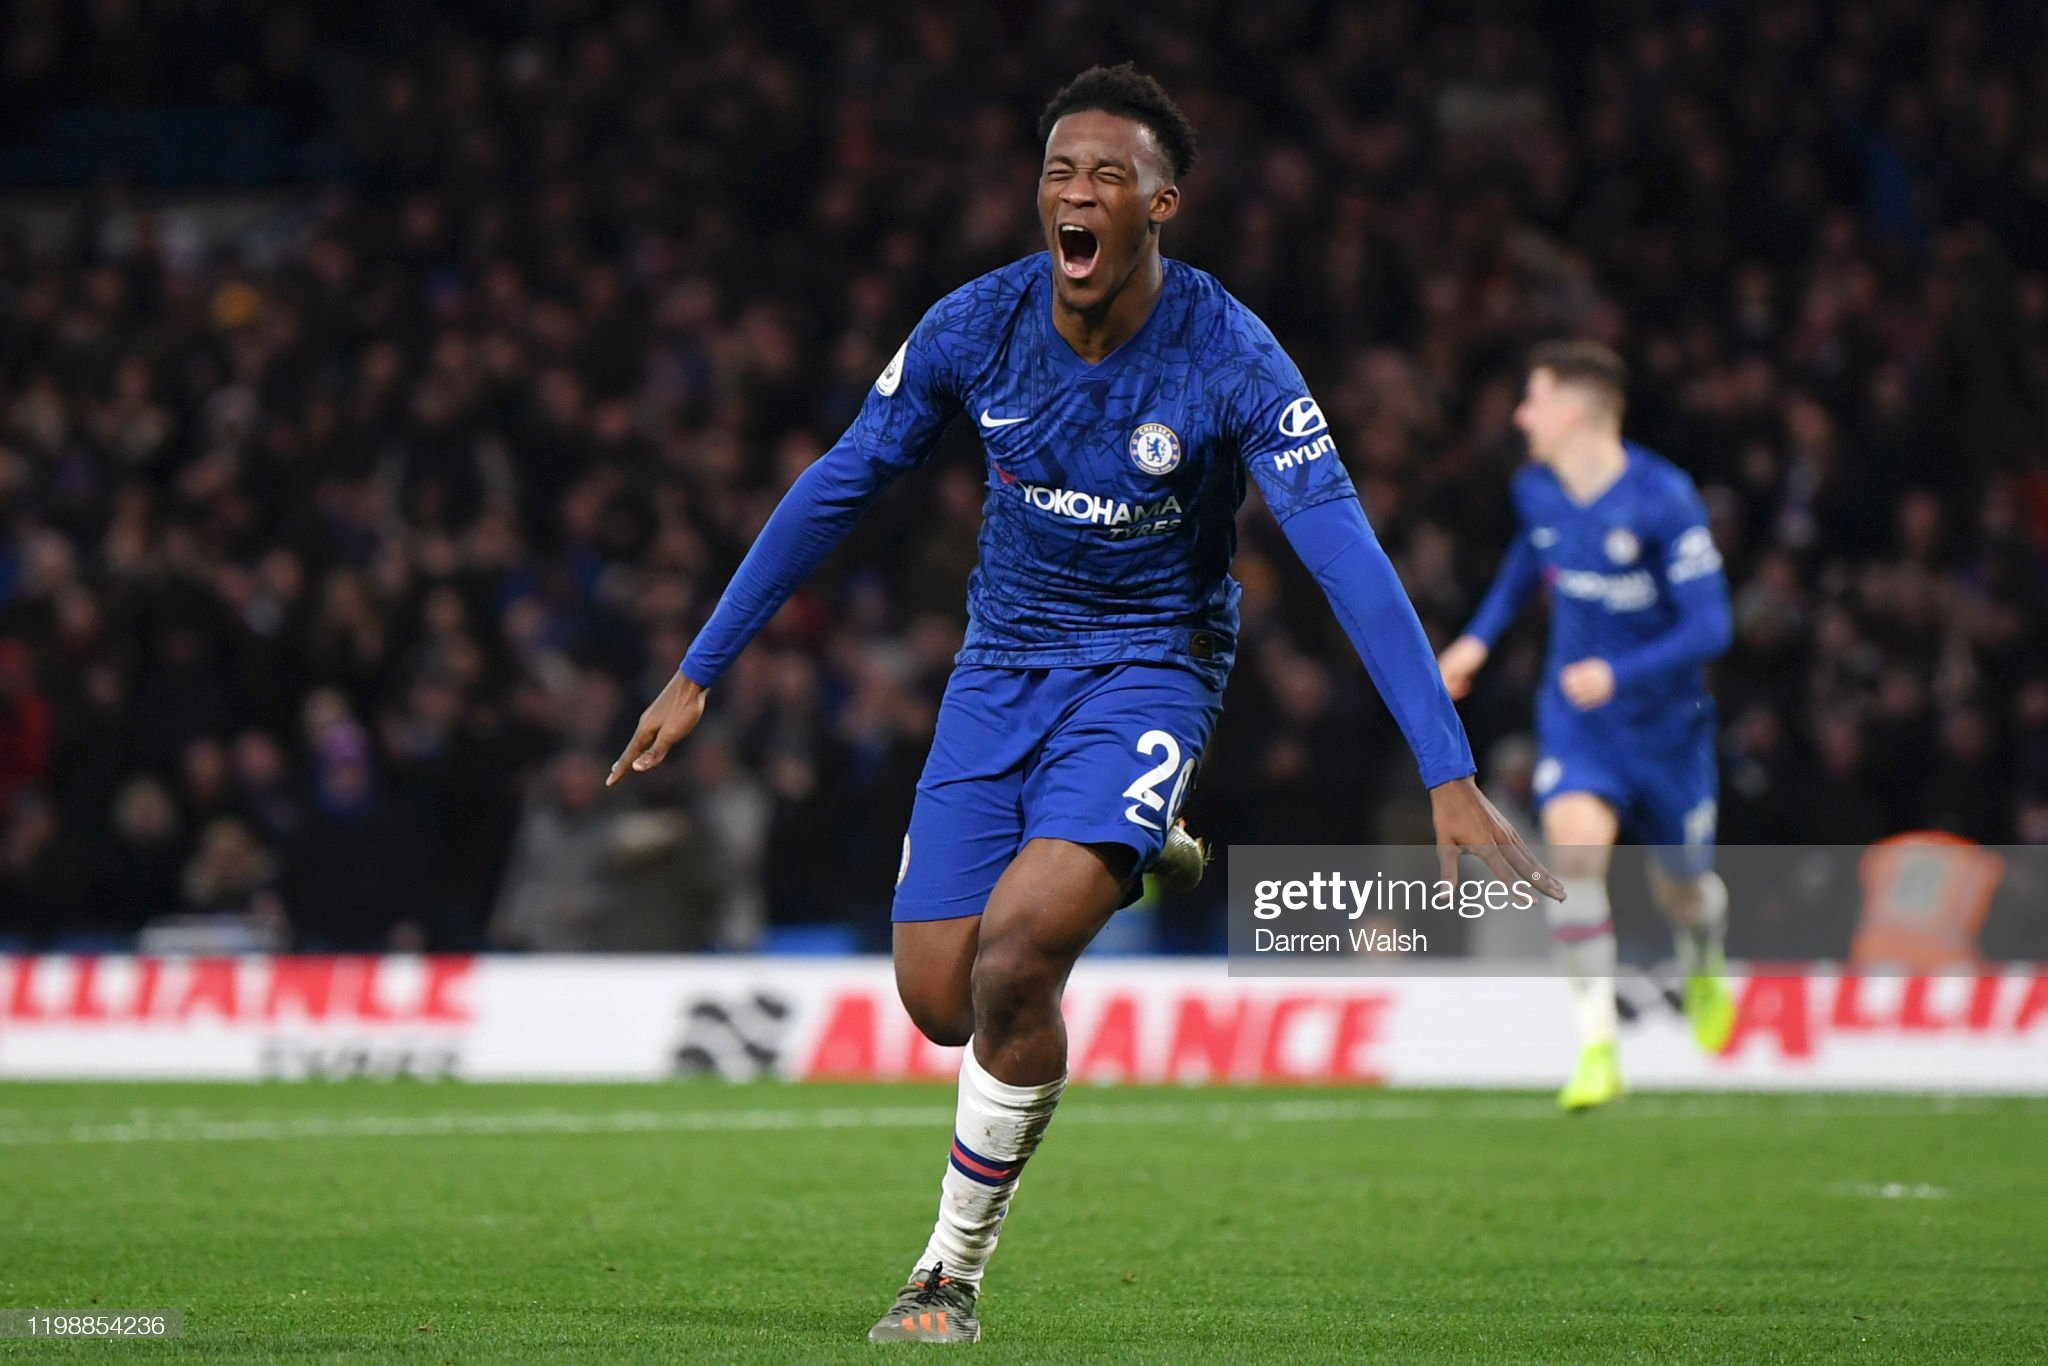 https://media.gettyimages.com/photos/callum-hudsonodoi-of-chelsea-celebrates-after-scoring-his-teams-third-picture-id1198854236?s=2048x2048